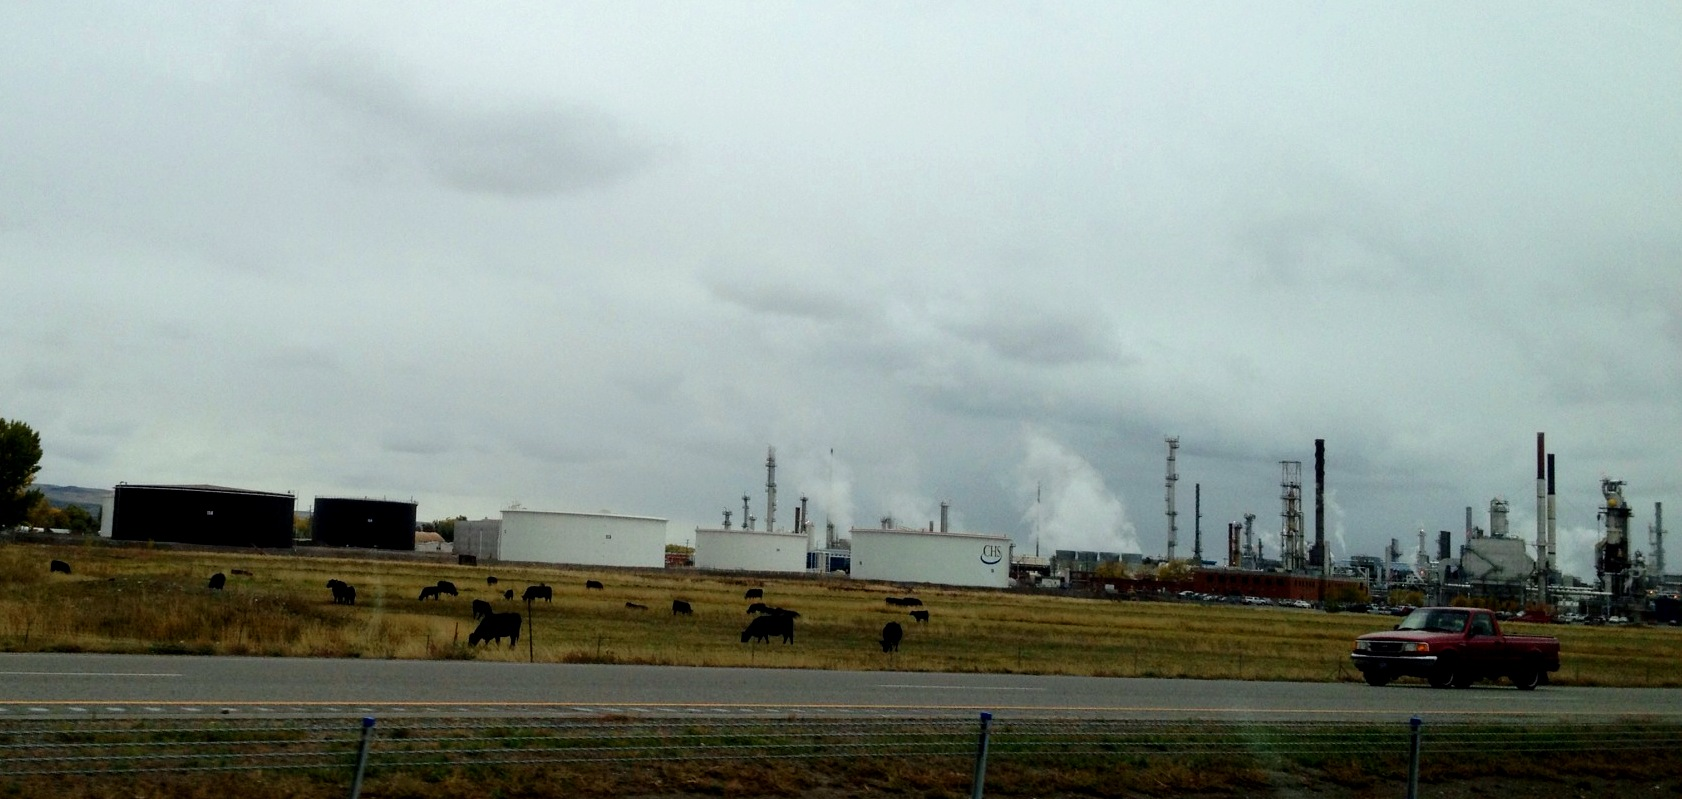 I guess we can have the cows inspect the refinery.